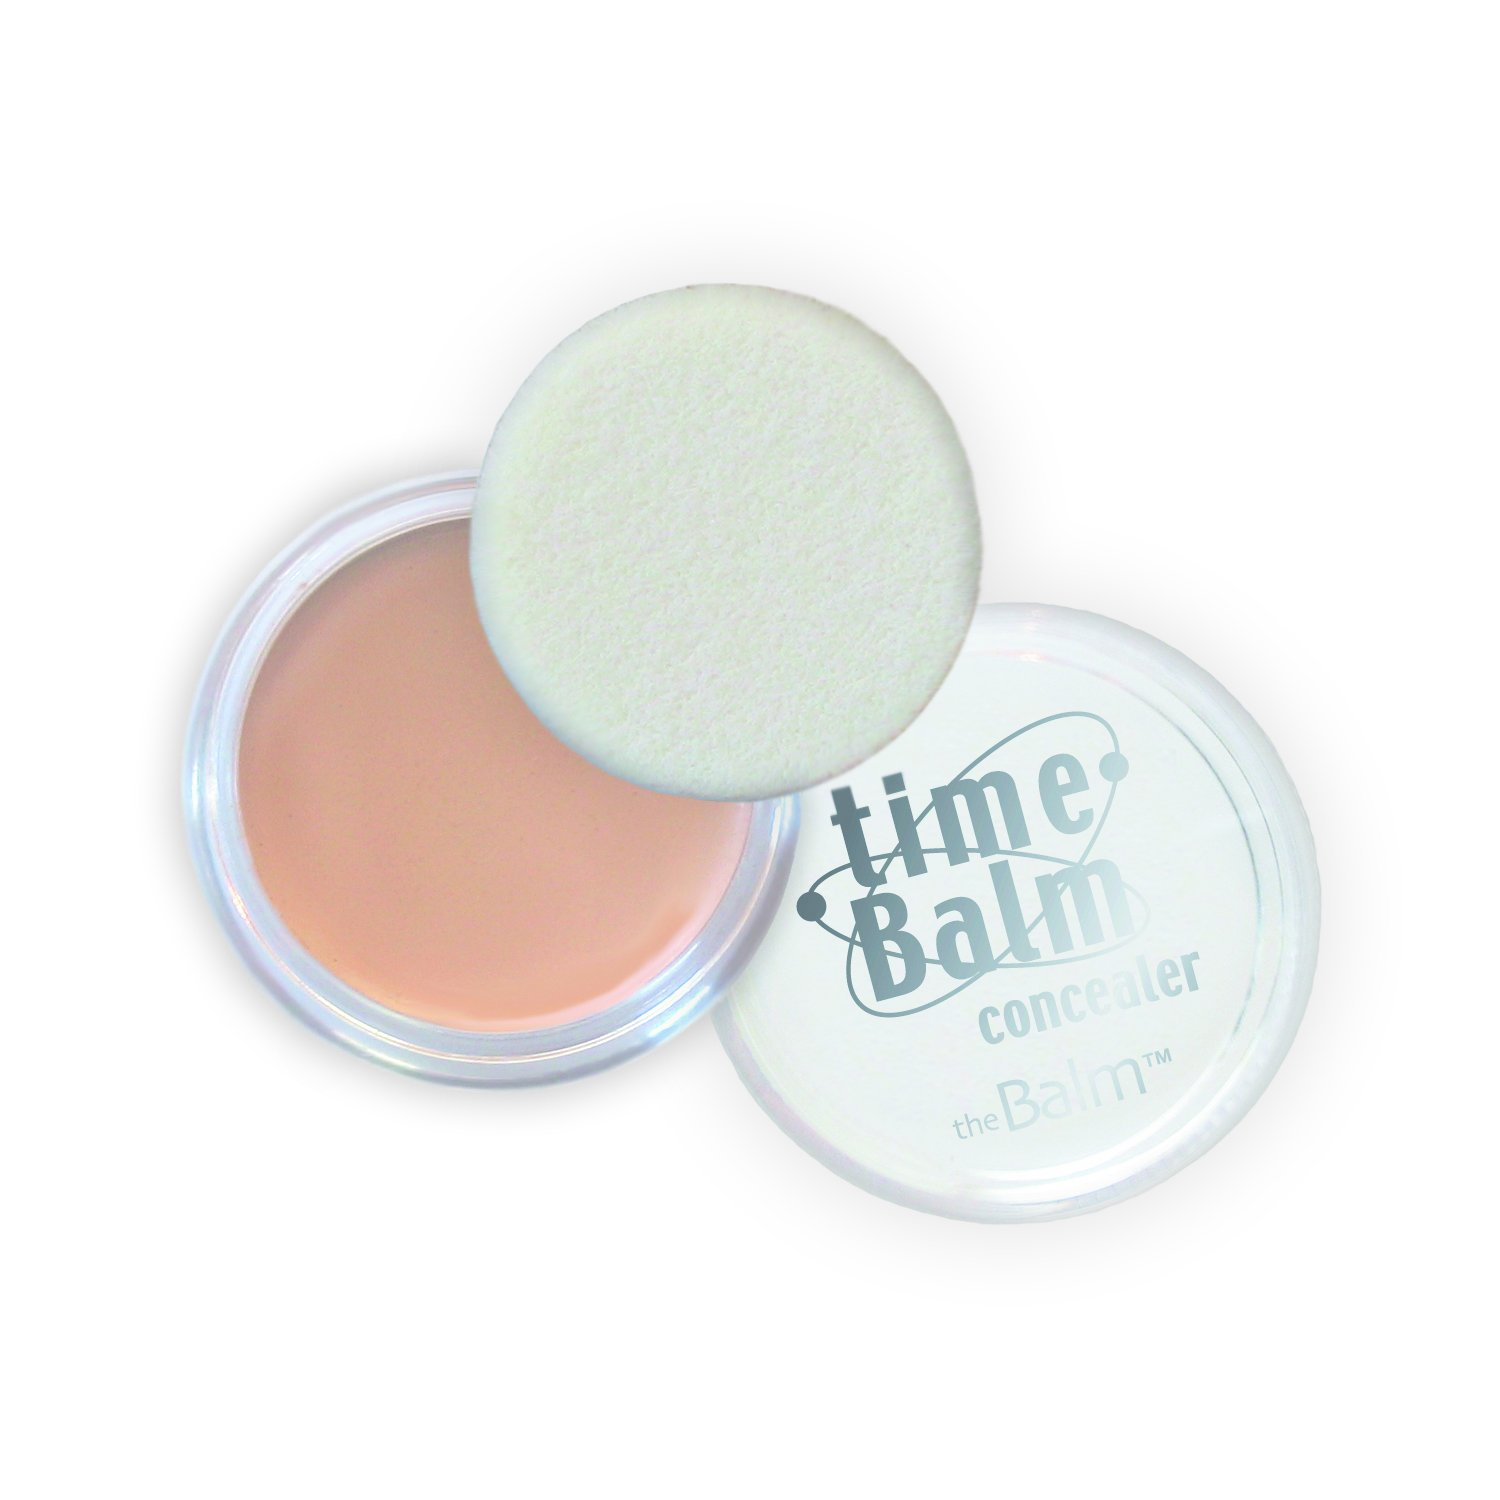 theBalm TimeBalm Concealer, Light Medium, 0.80 Oz The Balm Concel3